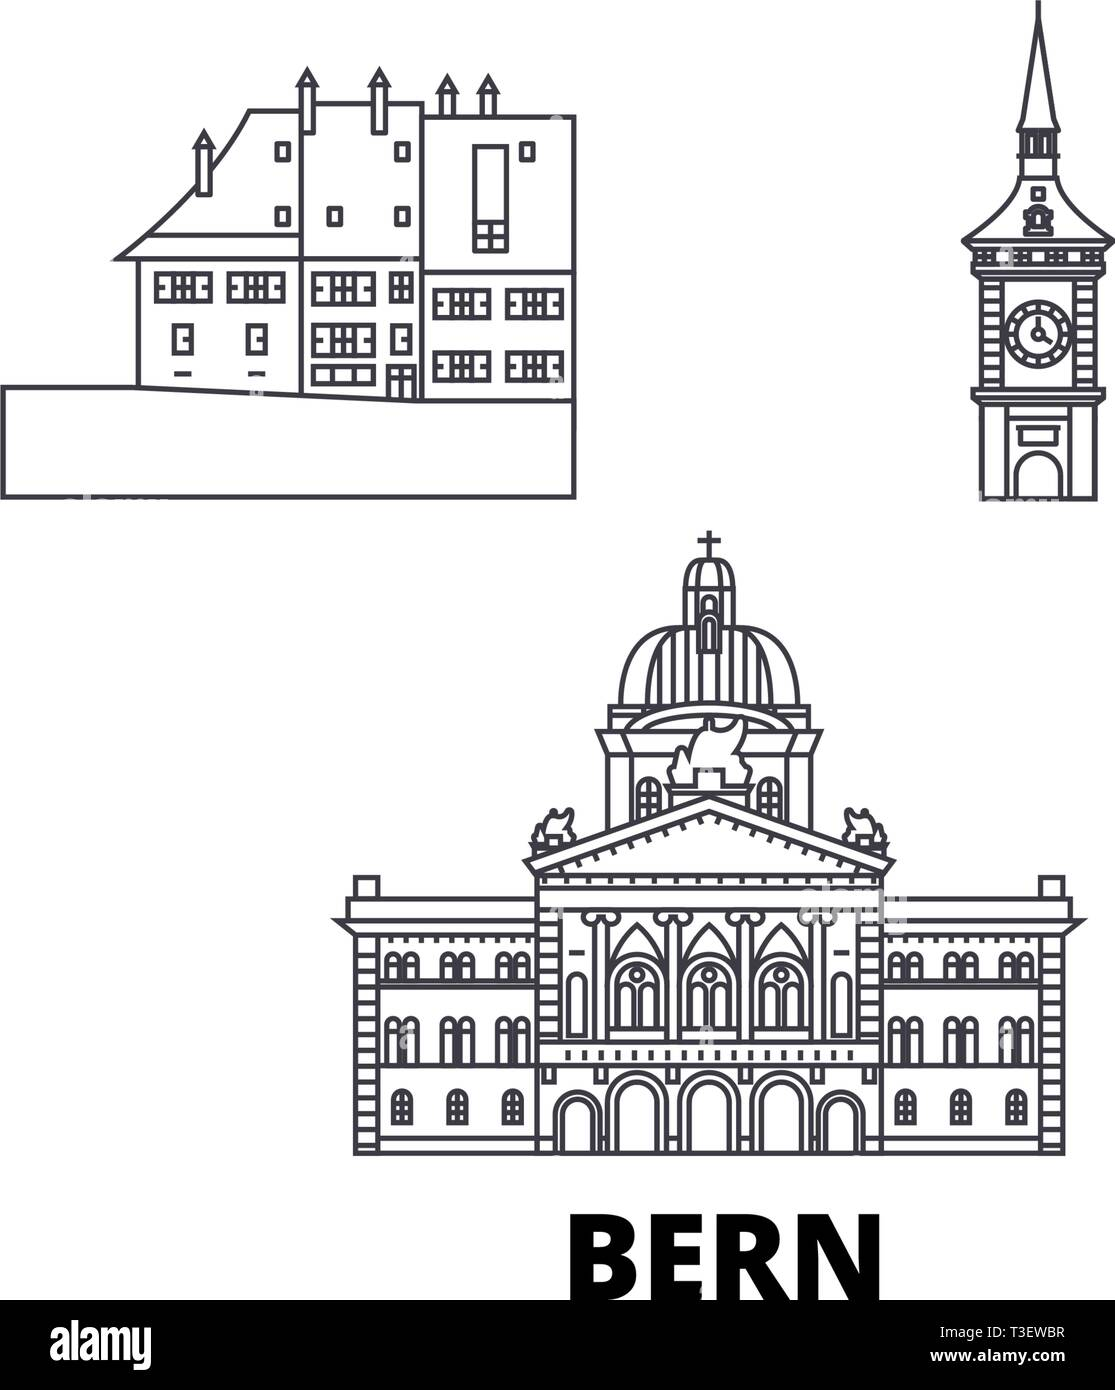 Switzerland, Bern line travel skyline set. Switzerland, Bern outline city vector illustration, symbol, travel sights, landmarks. - Stock Image